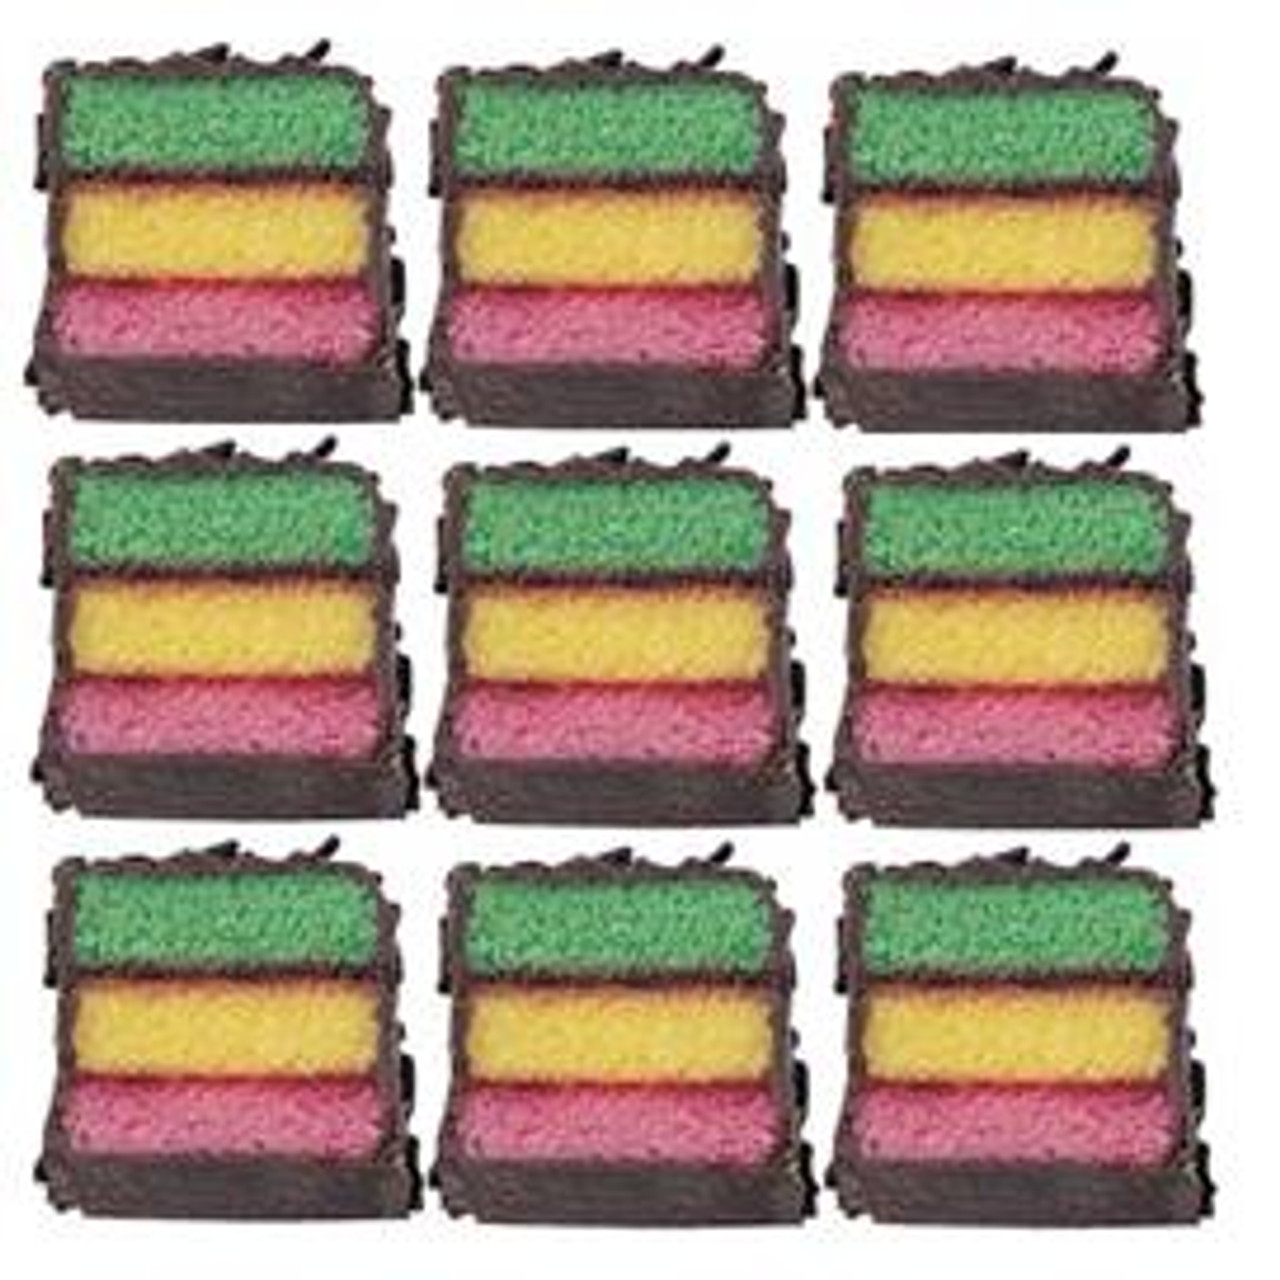 Rainbow Layer Cookies